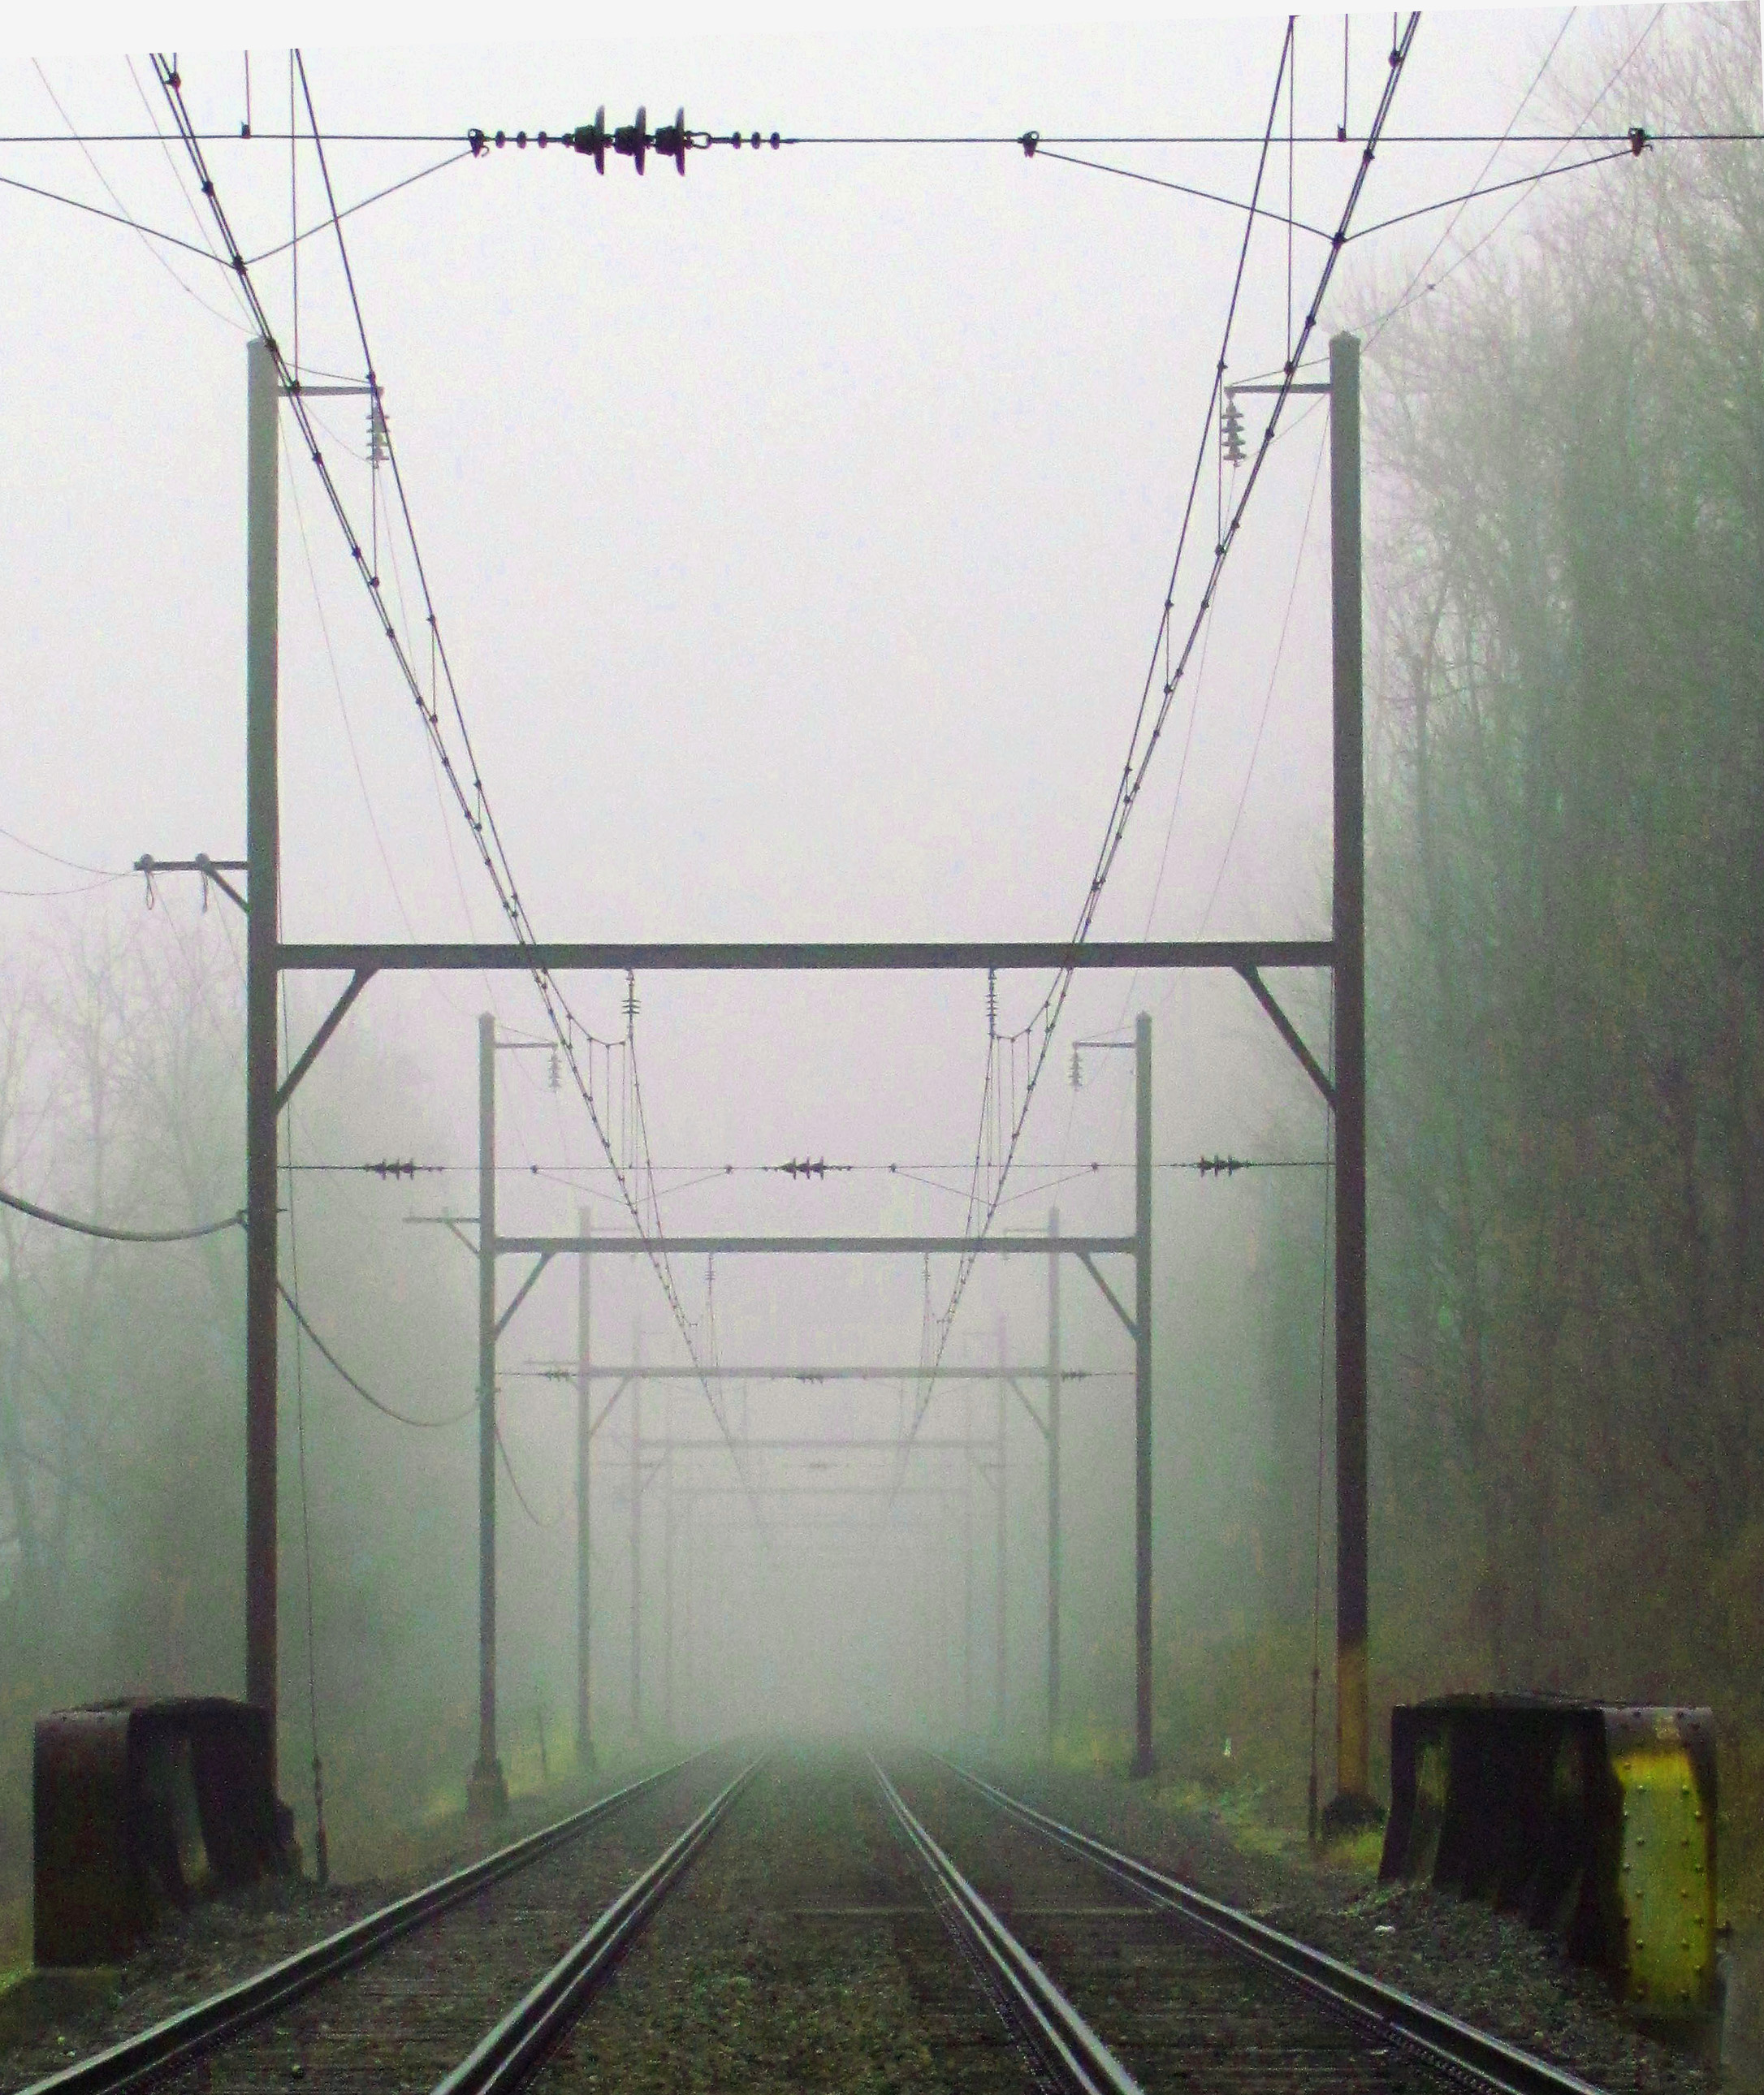 Commuter Rail Lines In The Morning Fog